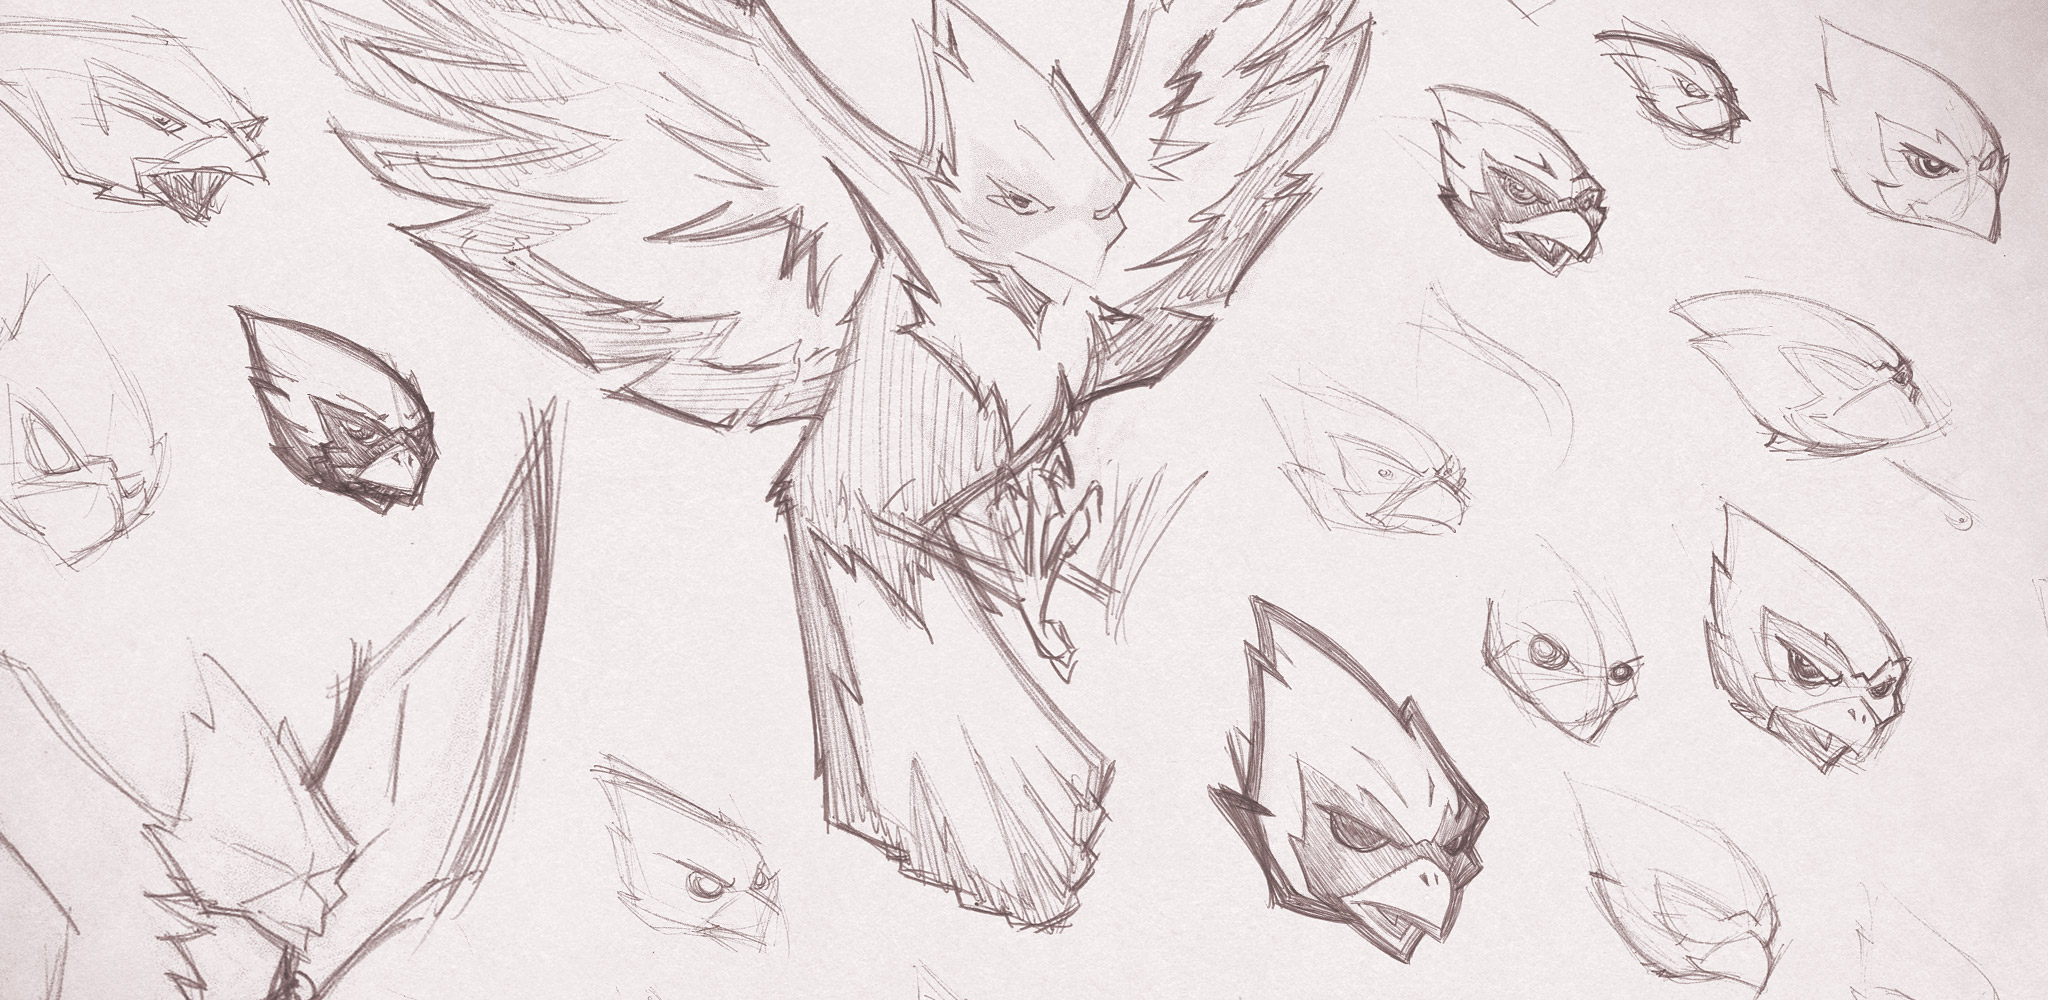 Raider Bird Sketches